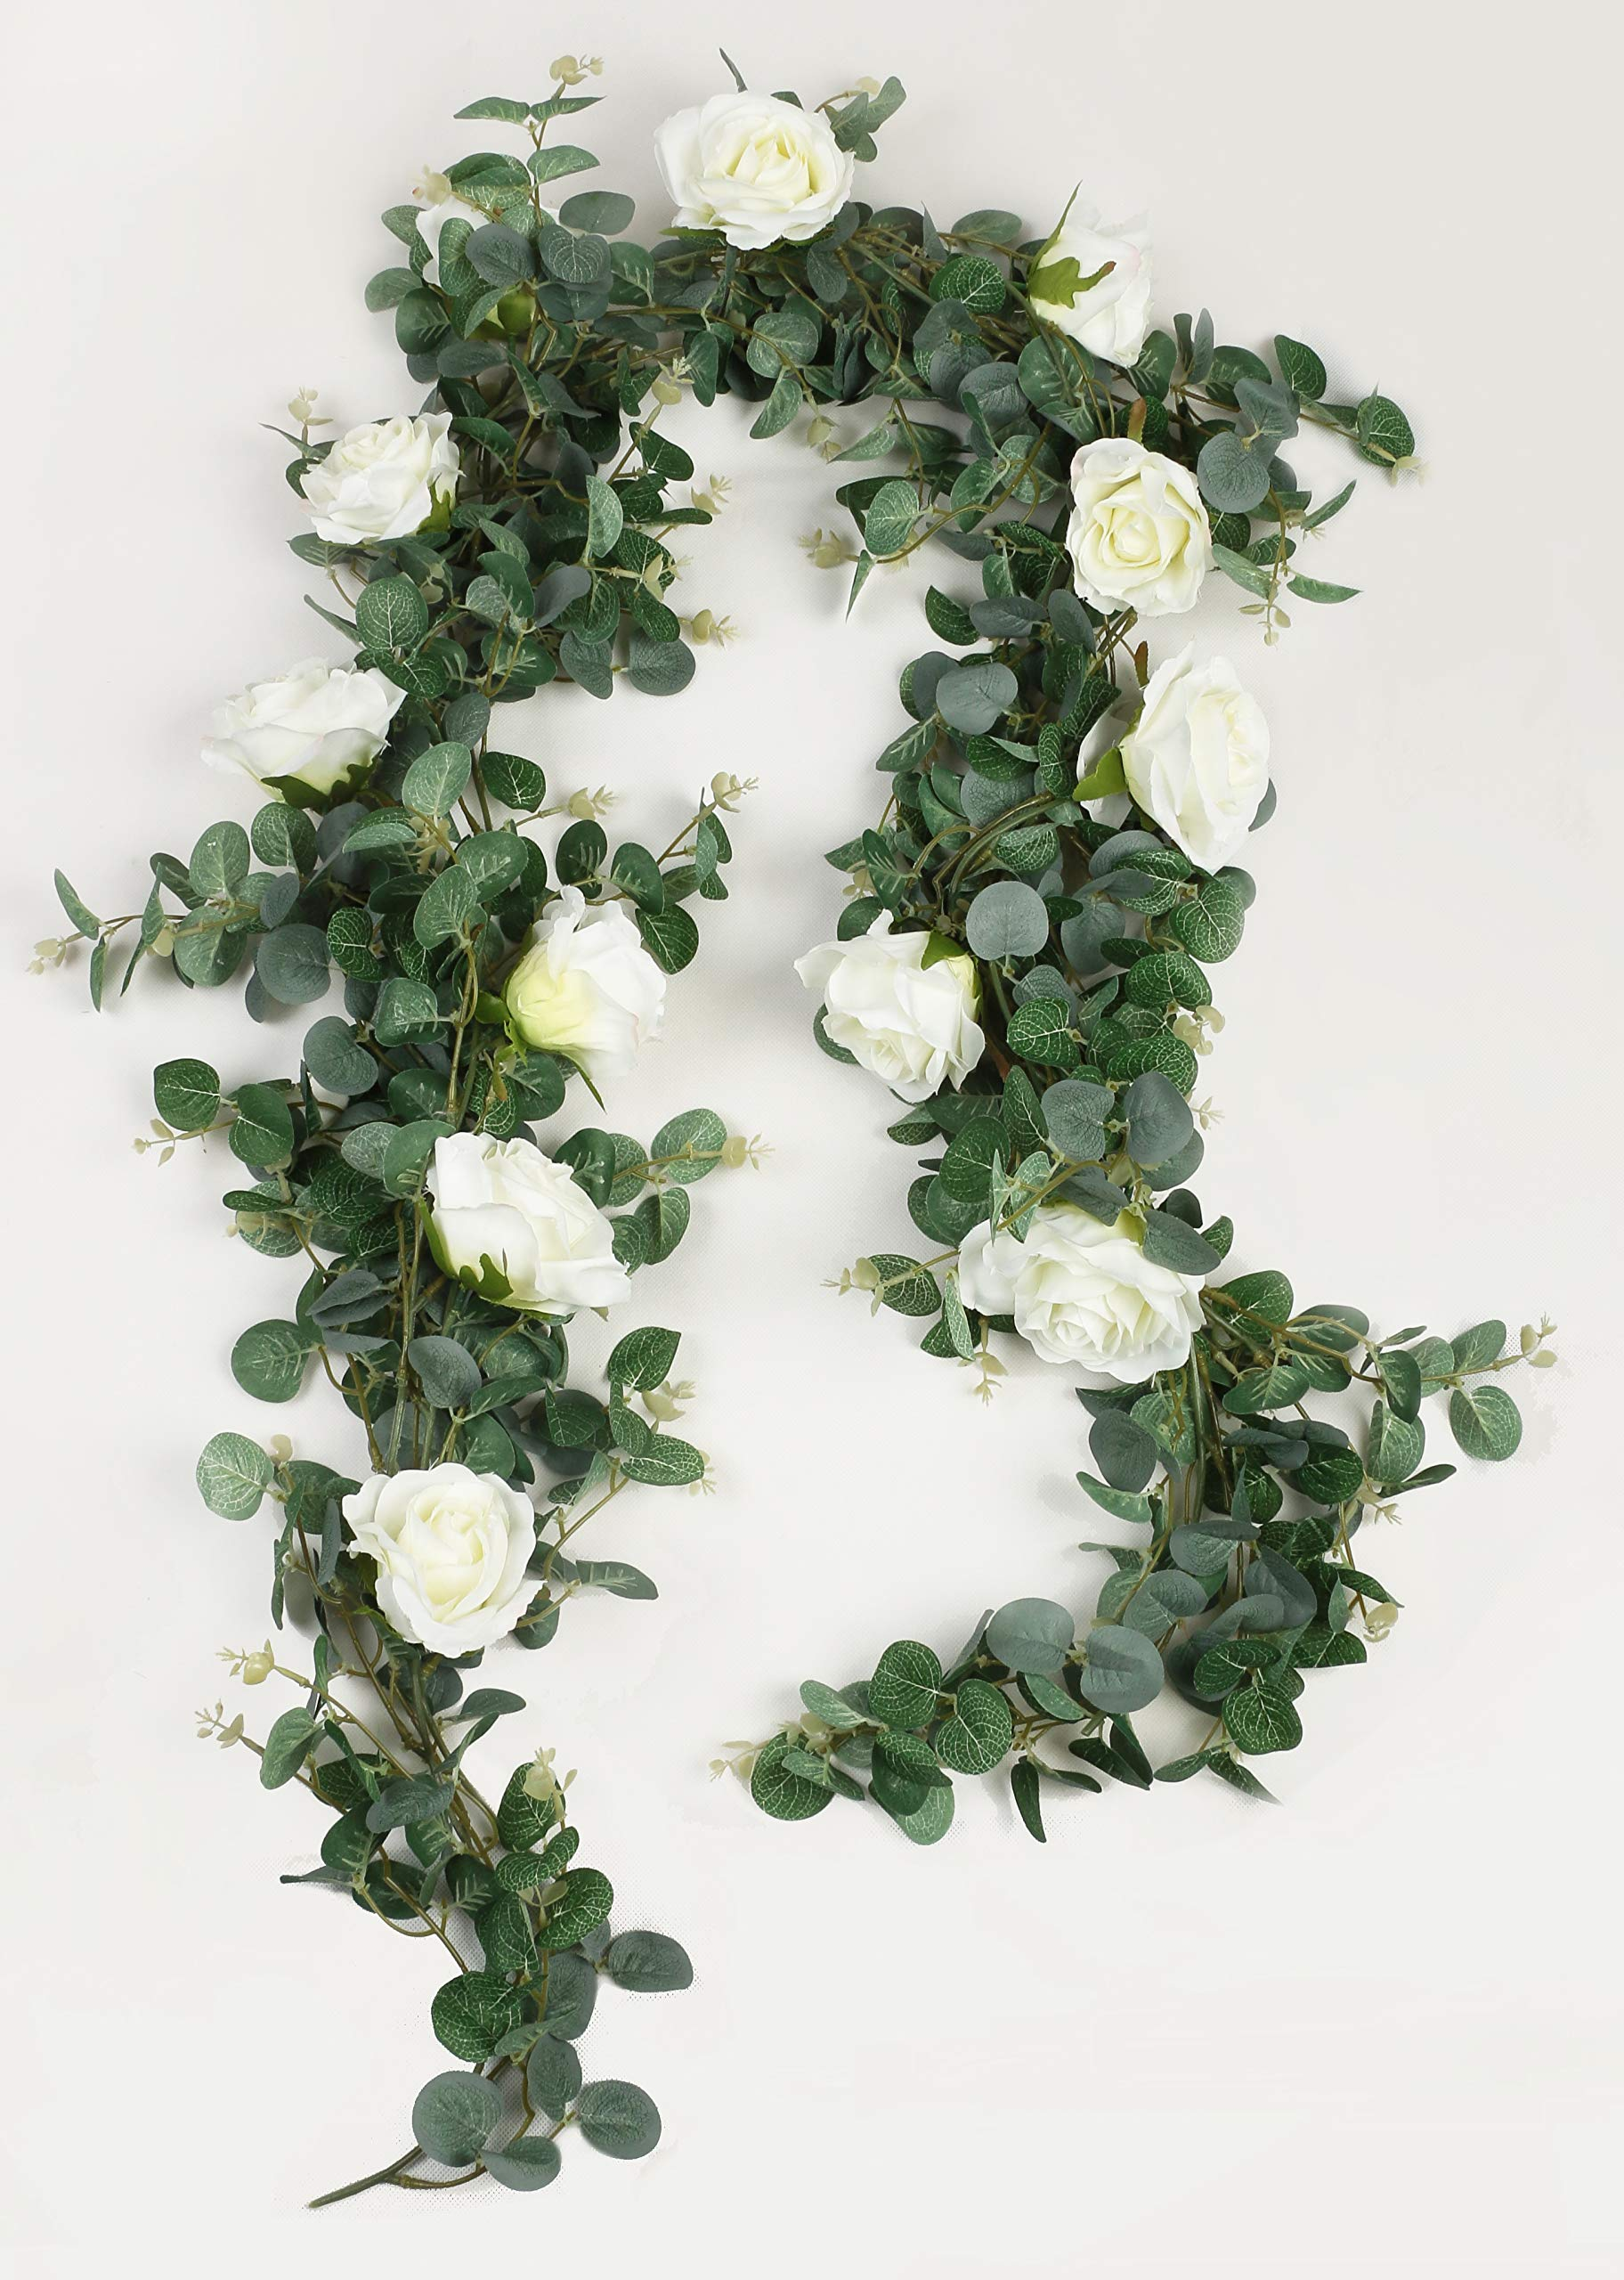 Aonewoe Artificial Eucalyptus Garland with Roses 2Pcs 11.8Ft/Total Greenery Garland Eucalyptus Leave for Table Wedding Backdrop Wall Decor(2Pcs) by Aonewoe